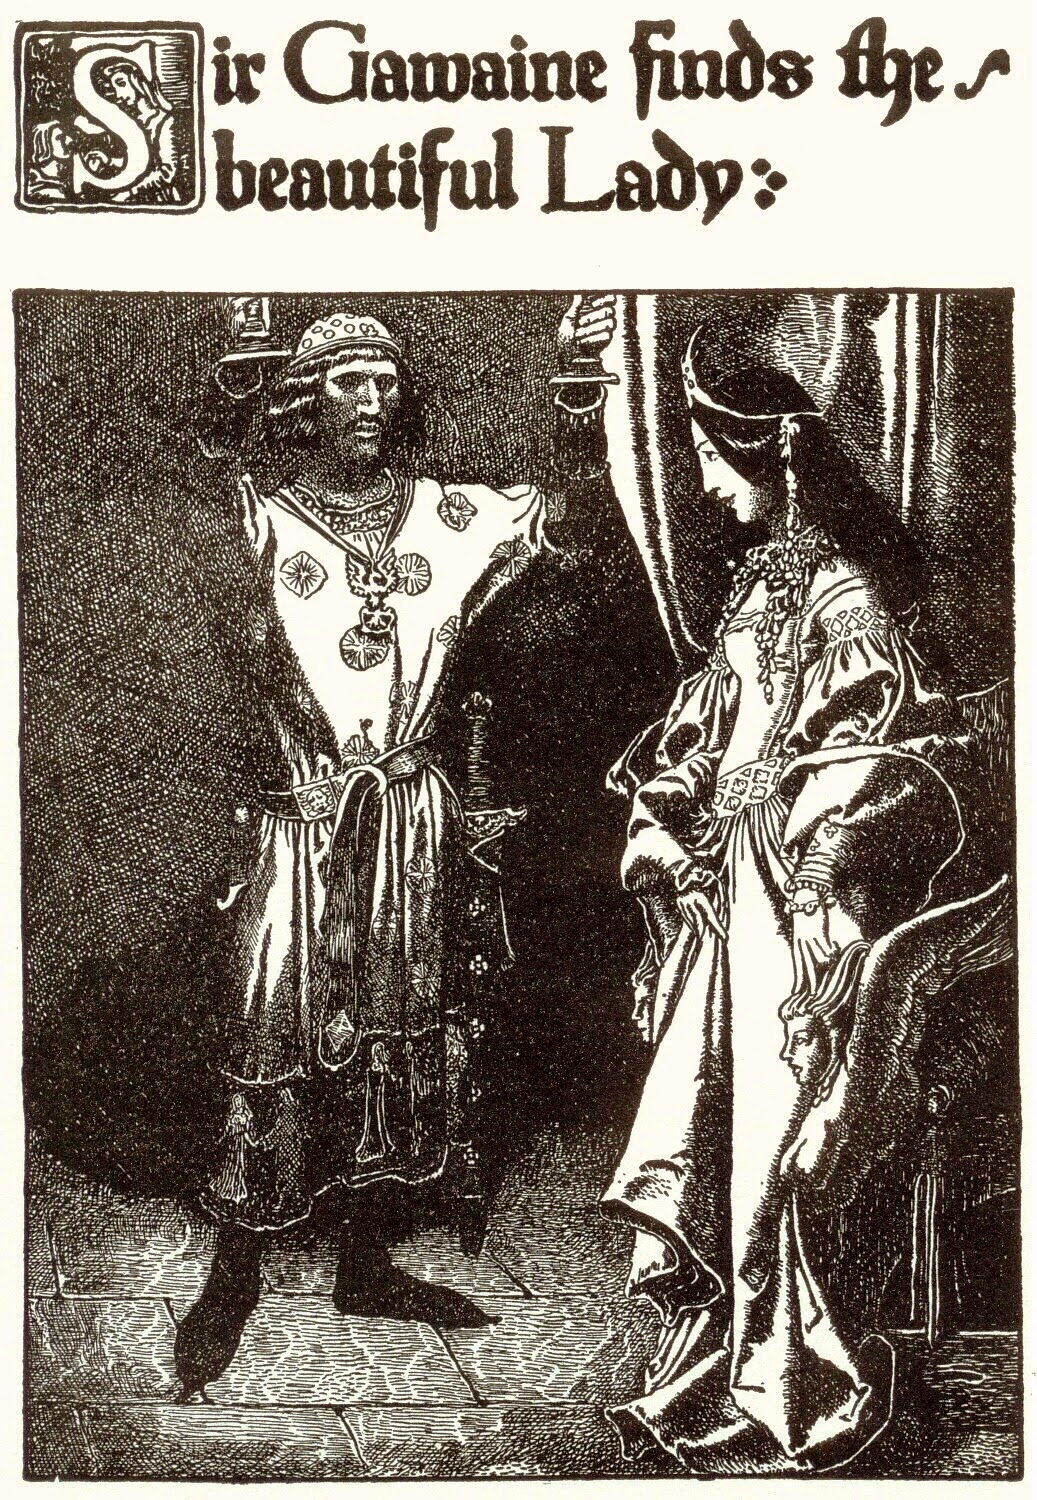 sir gawain and women treatment The romance of sir gawain and the carle of carlisle demonstrates gawain's surpassing chivalry in what seems a most unlikely setting, a carl's castle carl (from old norse) means simply man.